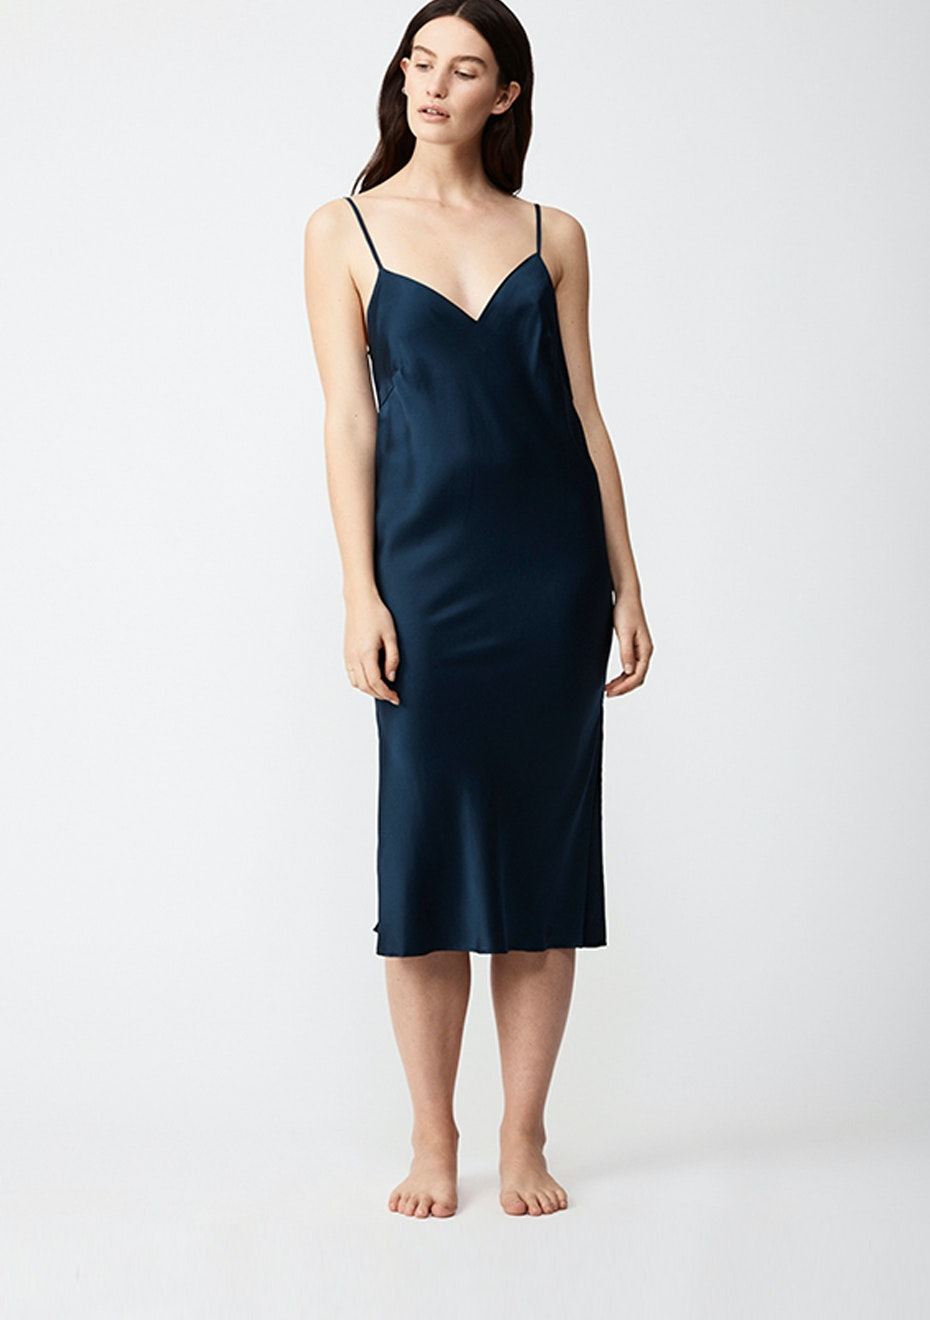 NATALIJA - Silk Slip Dress - Navy